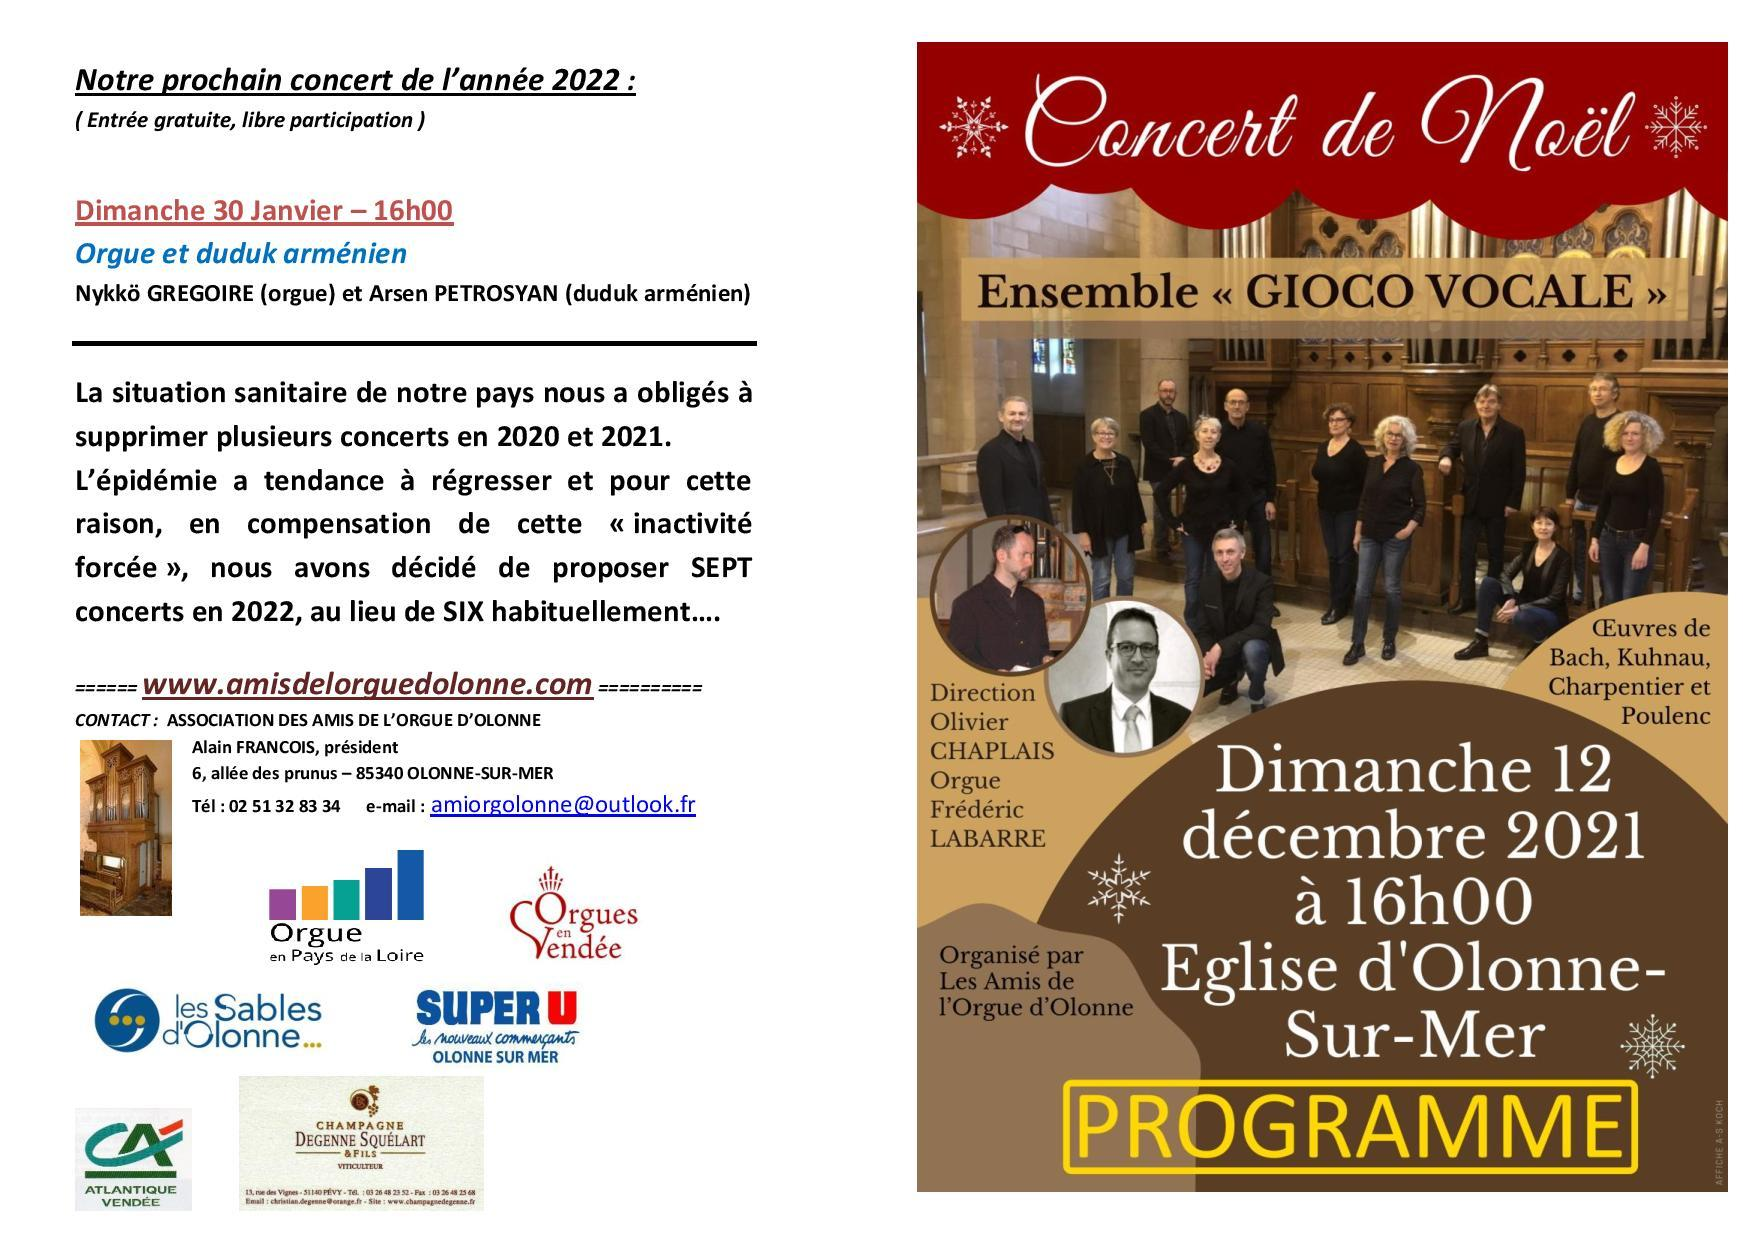 2021 12 12 programme gioco vocale concert noel page 1